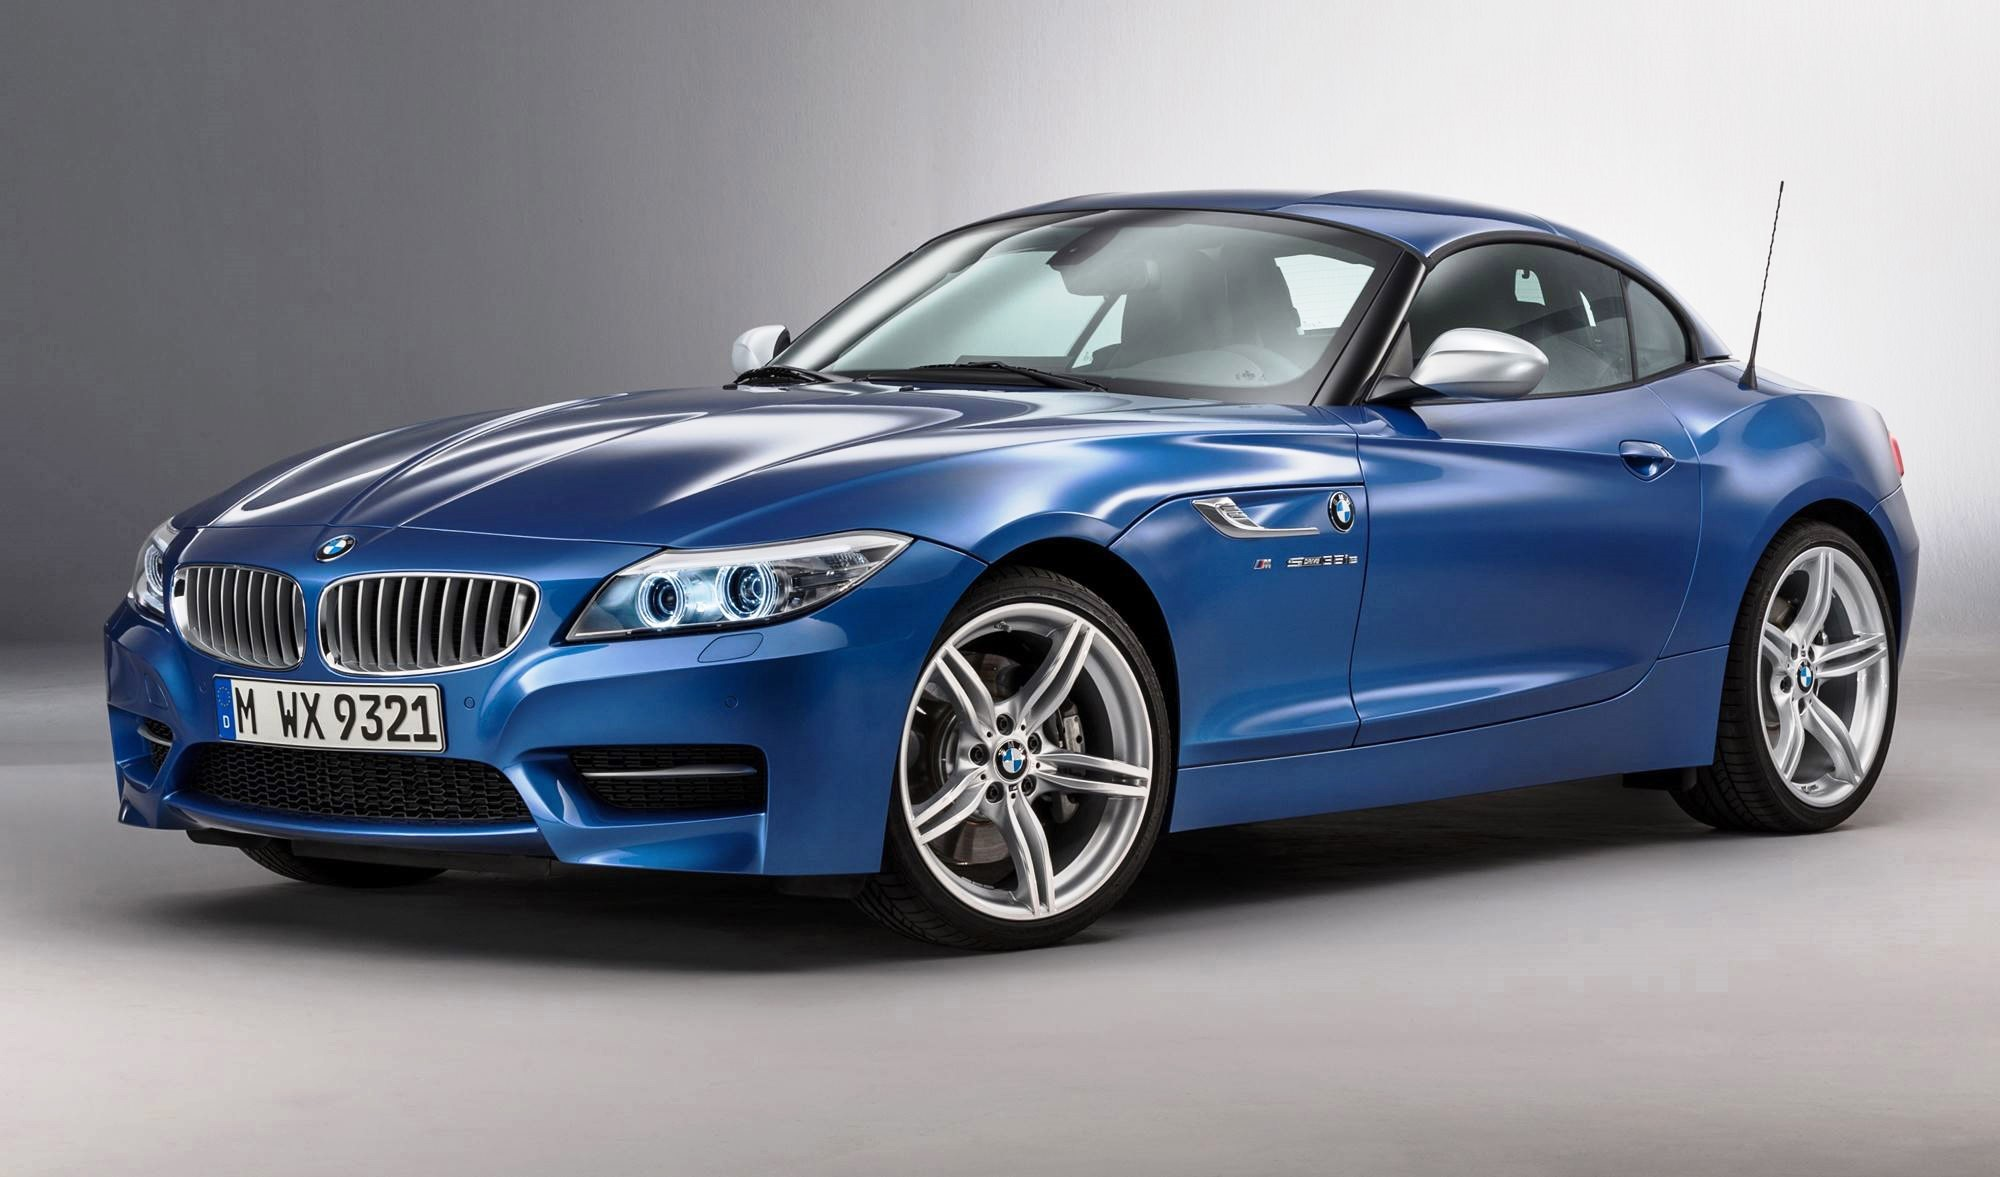 2016 bmw z4 m sport estoril blue 2. Black Bedroom Furniture Sets. Home Design Ideas